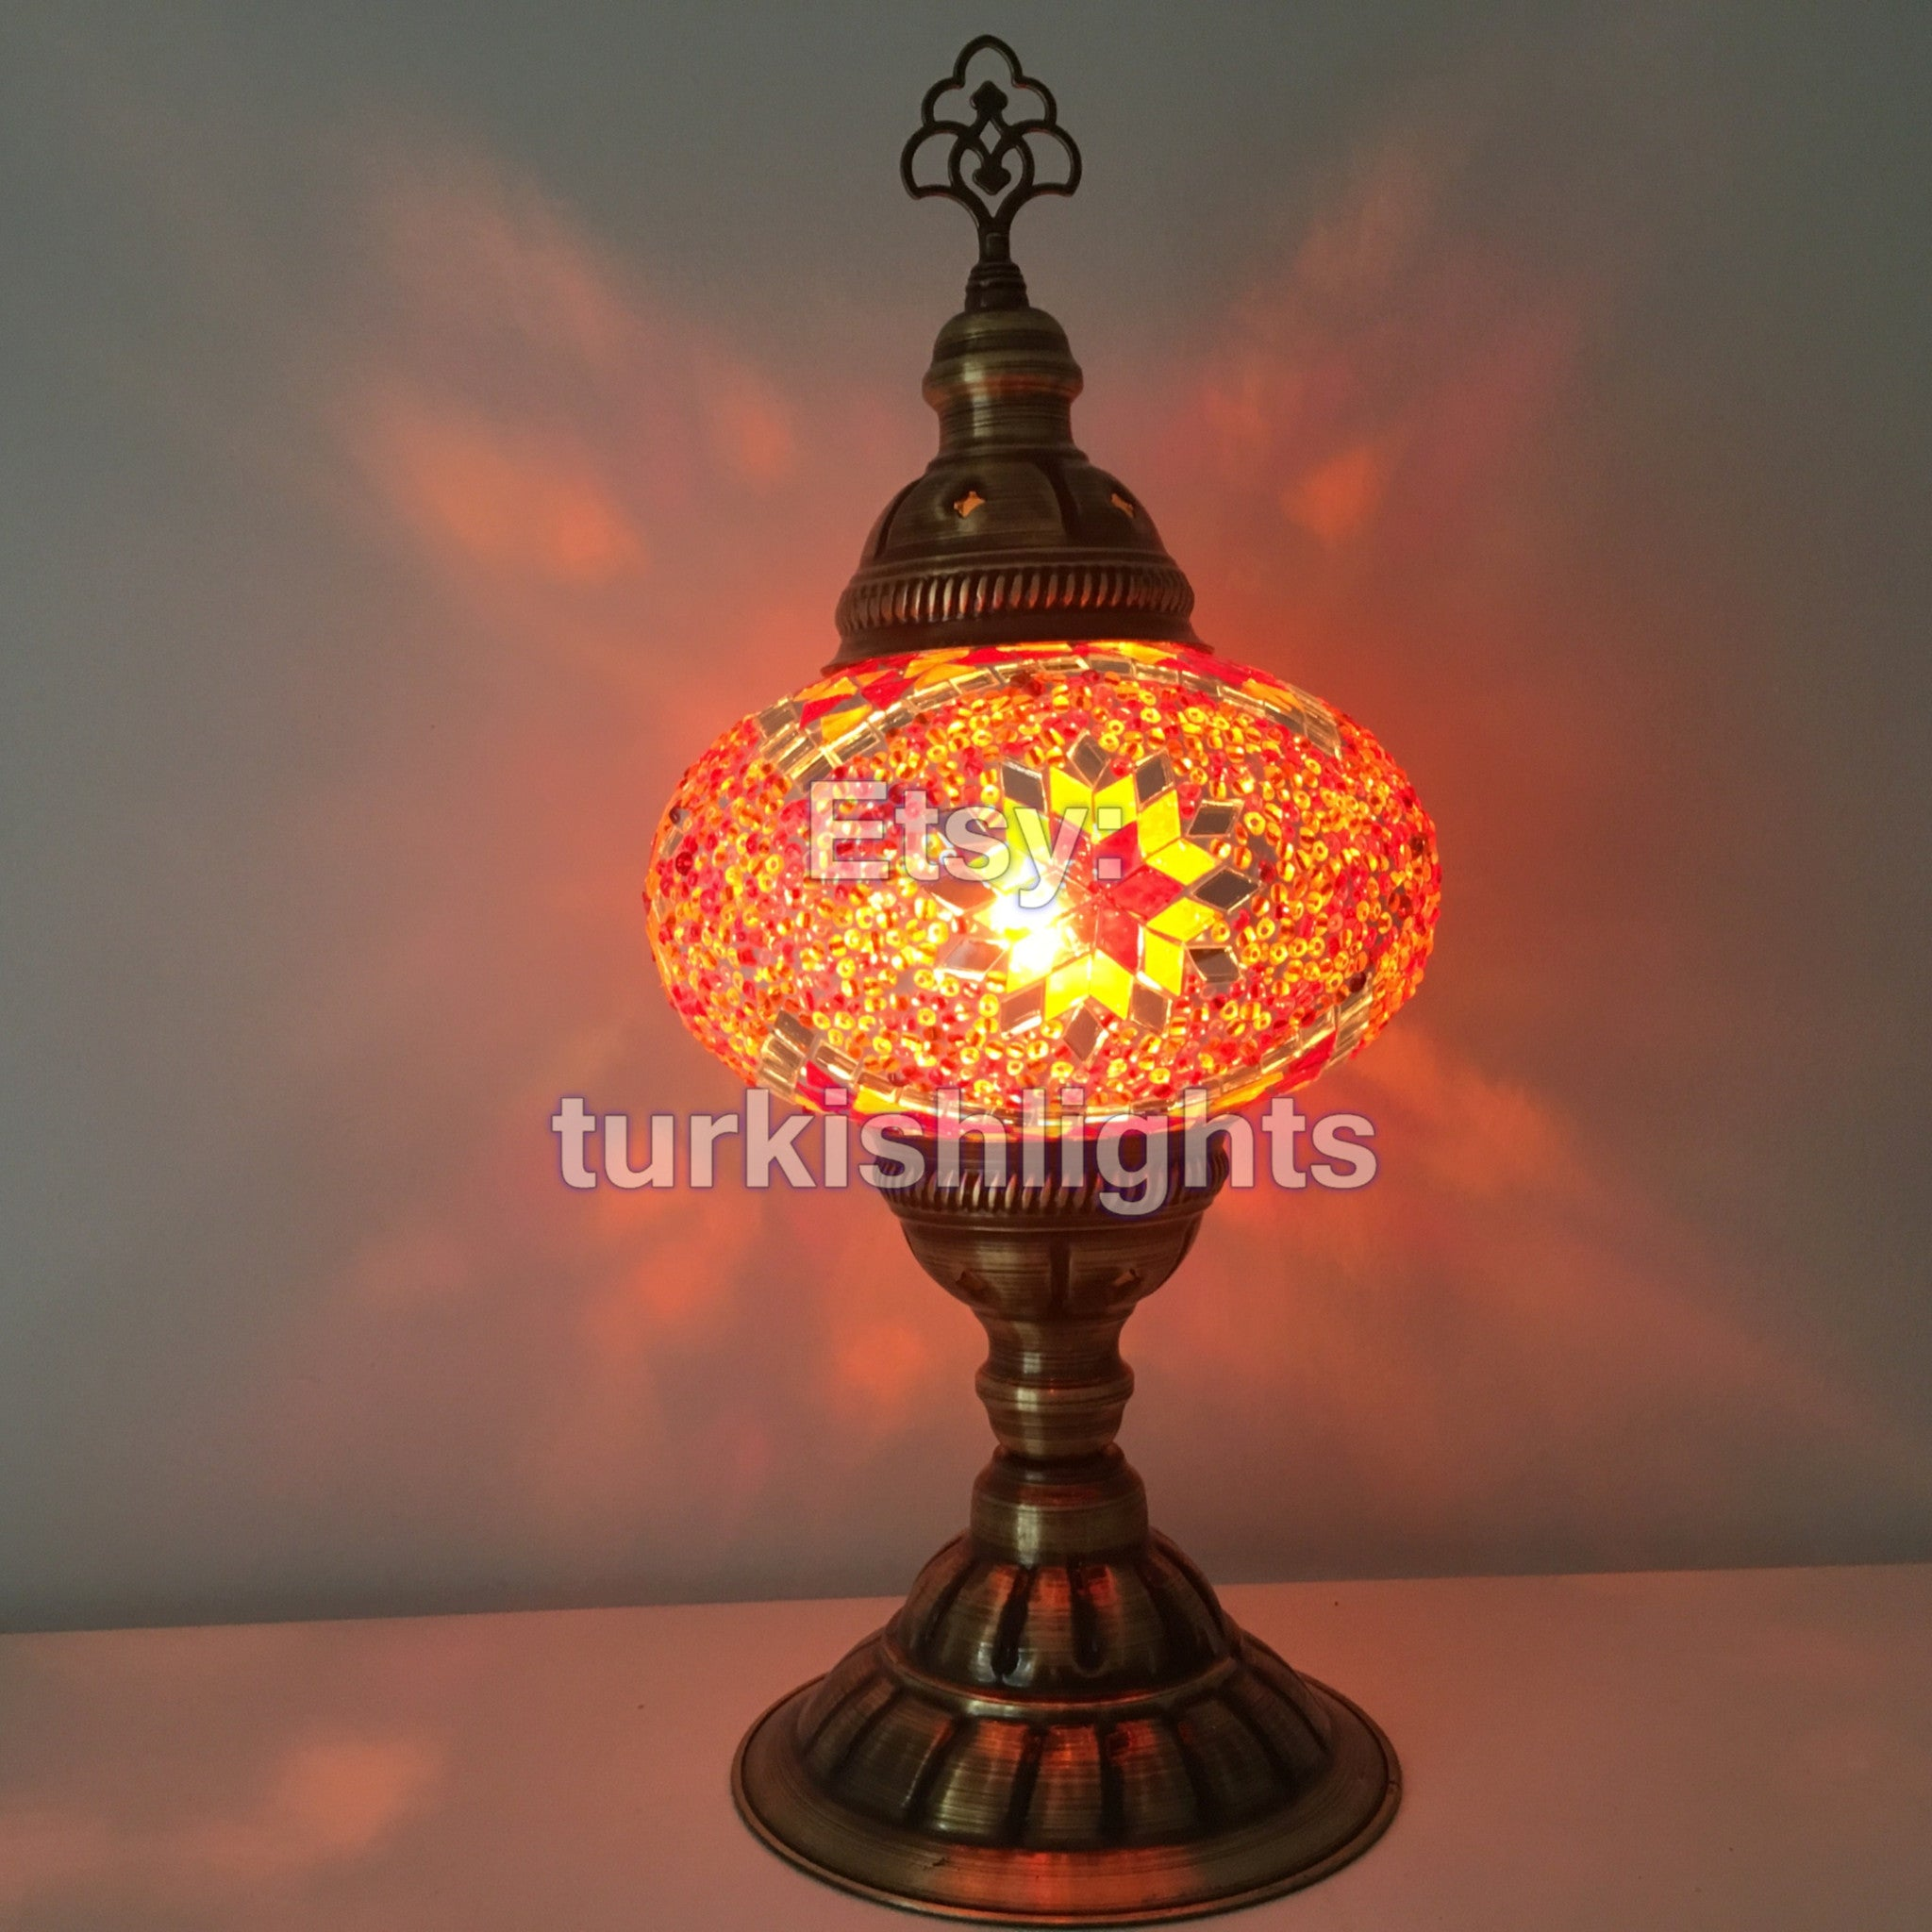 wells glass ltd shop antiques lamp globe archive sold french lamps opaline nicholas